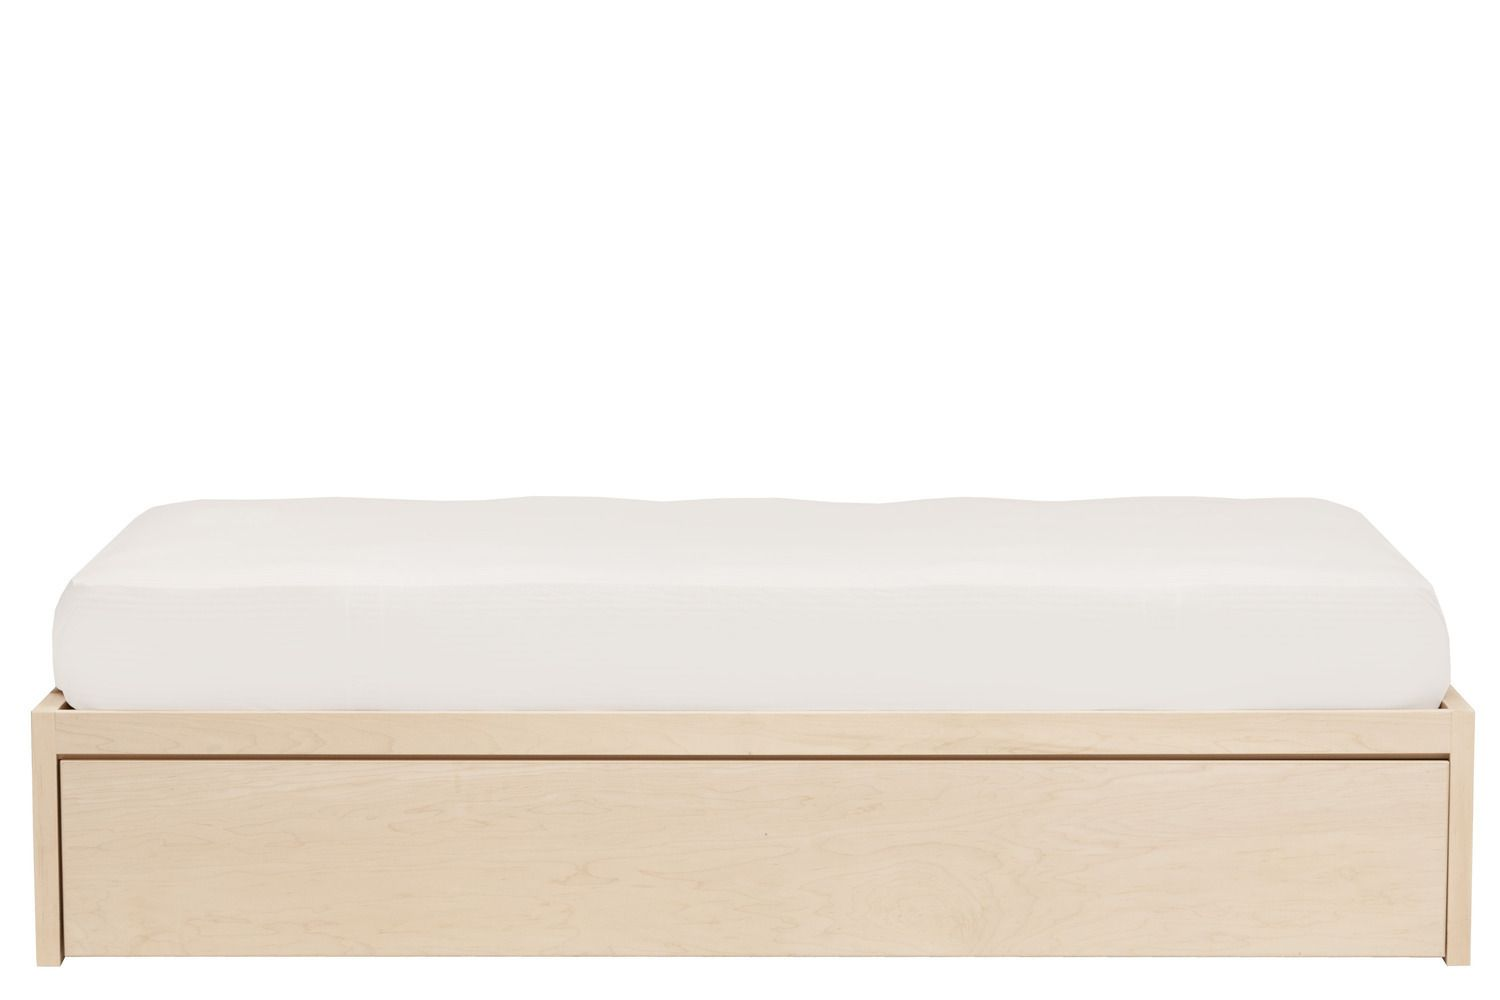 Thompson Trundle Bed / Twin Beds / Bedroom by urbangreen Furniture New York